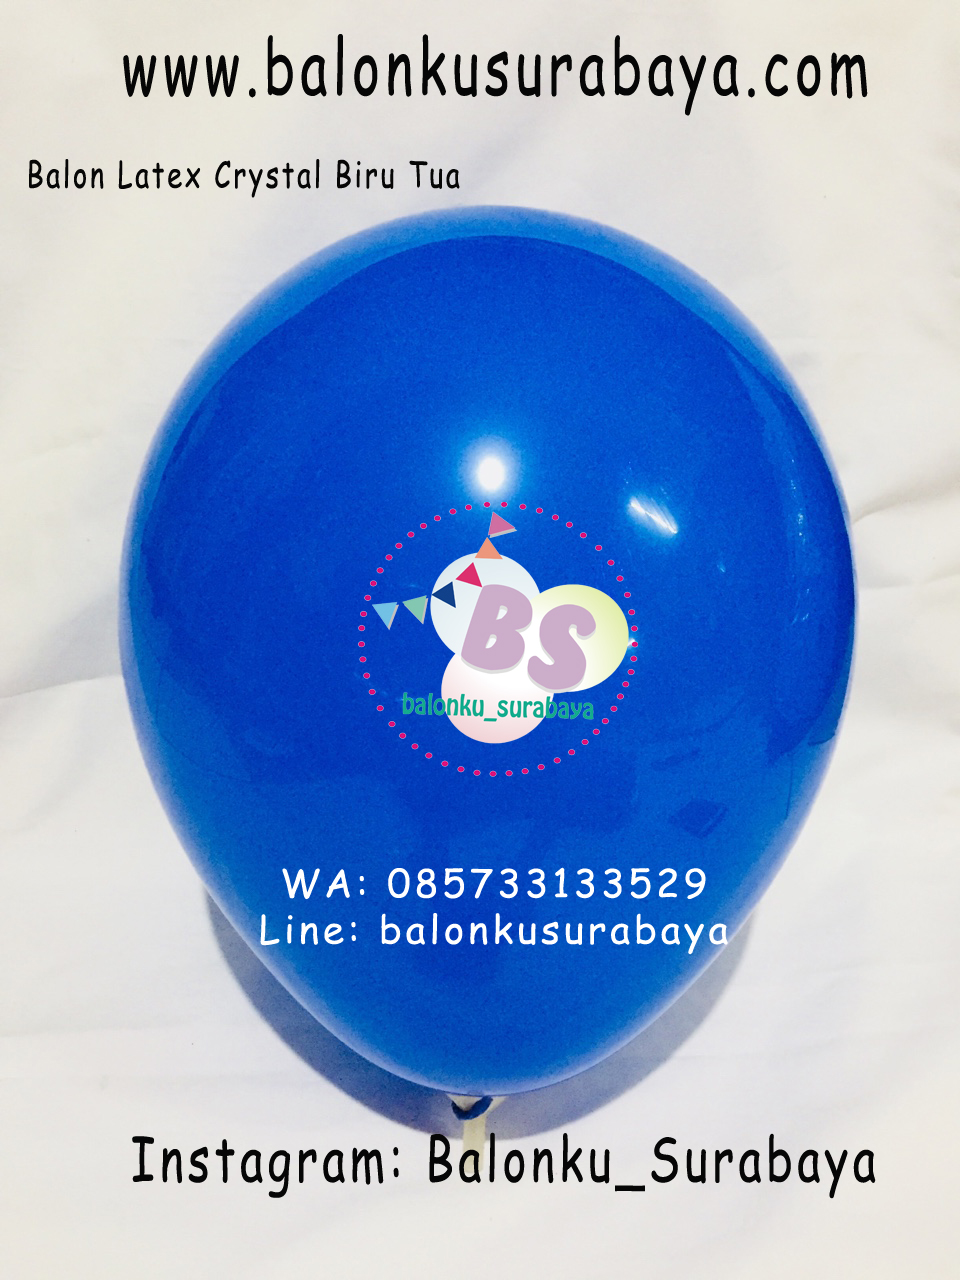 Balon latex Crystal Warna Biru Tua